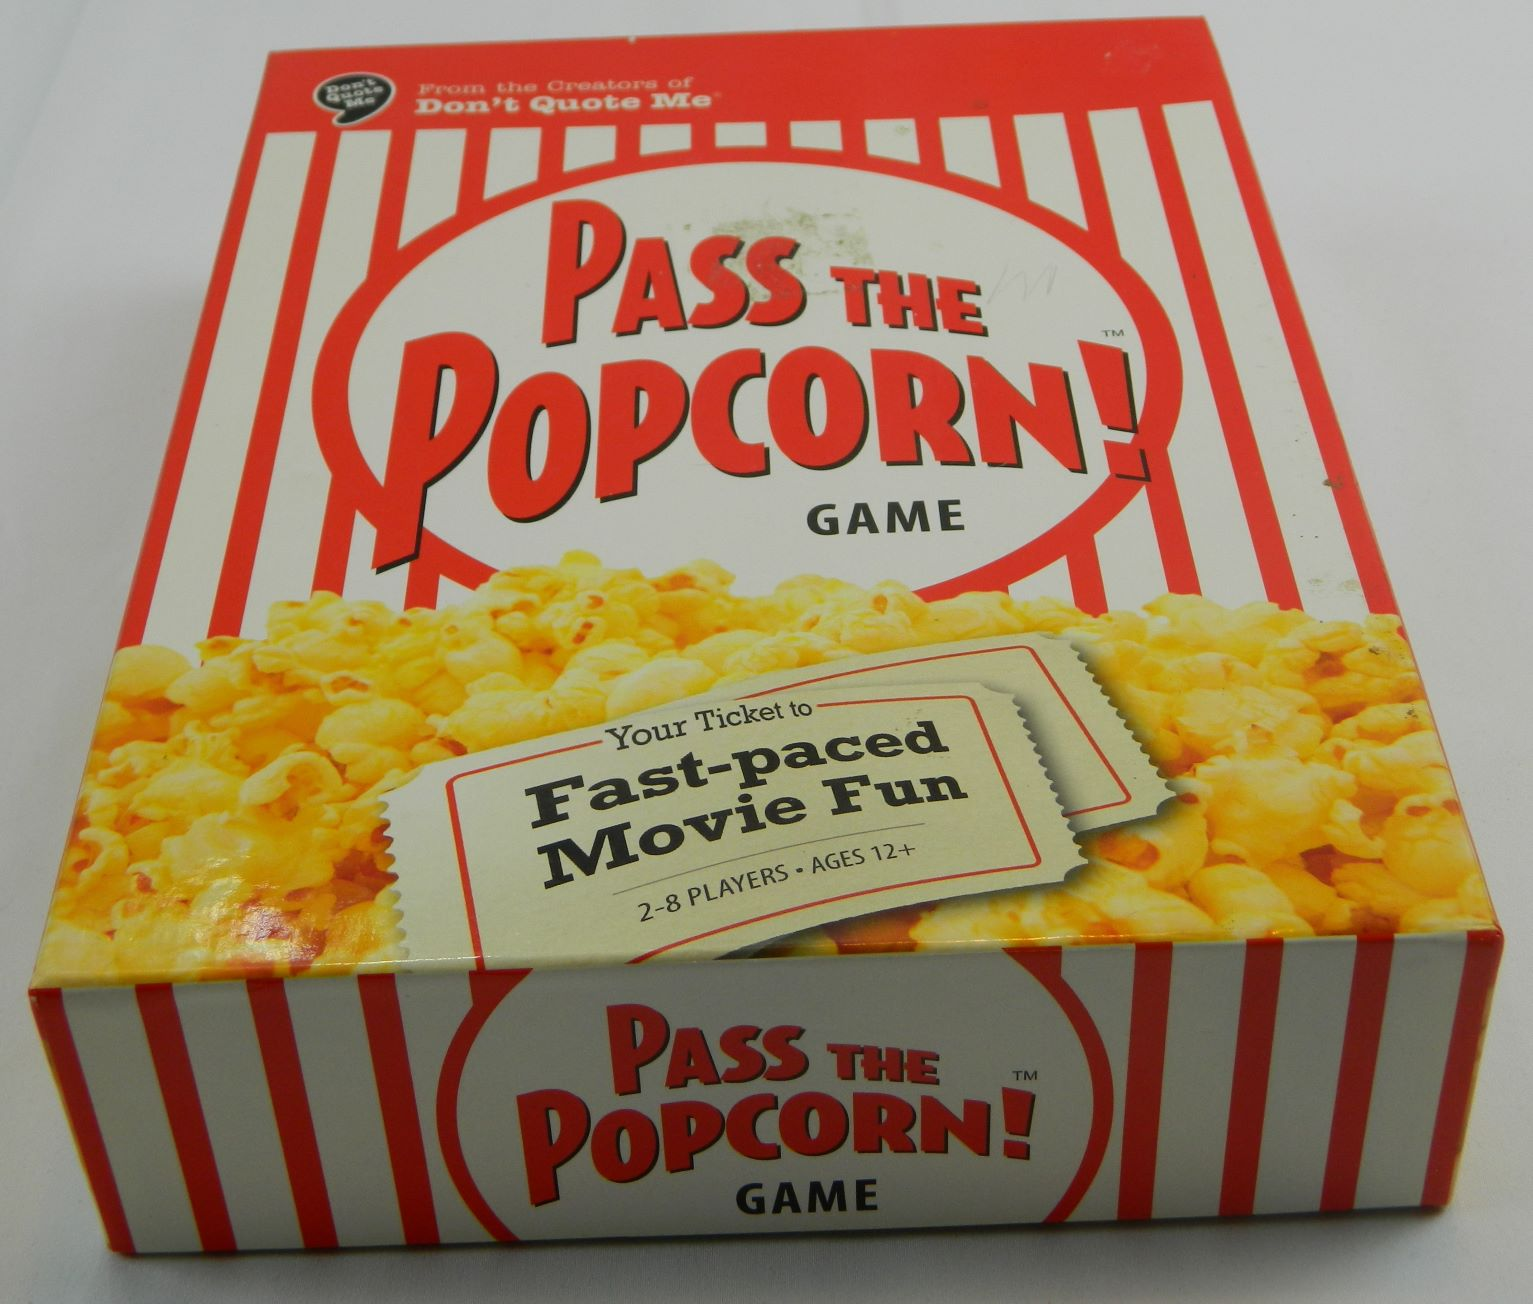 Box for Pass the Popcorn